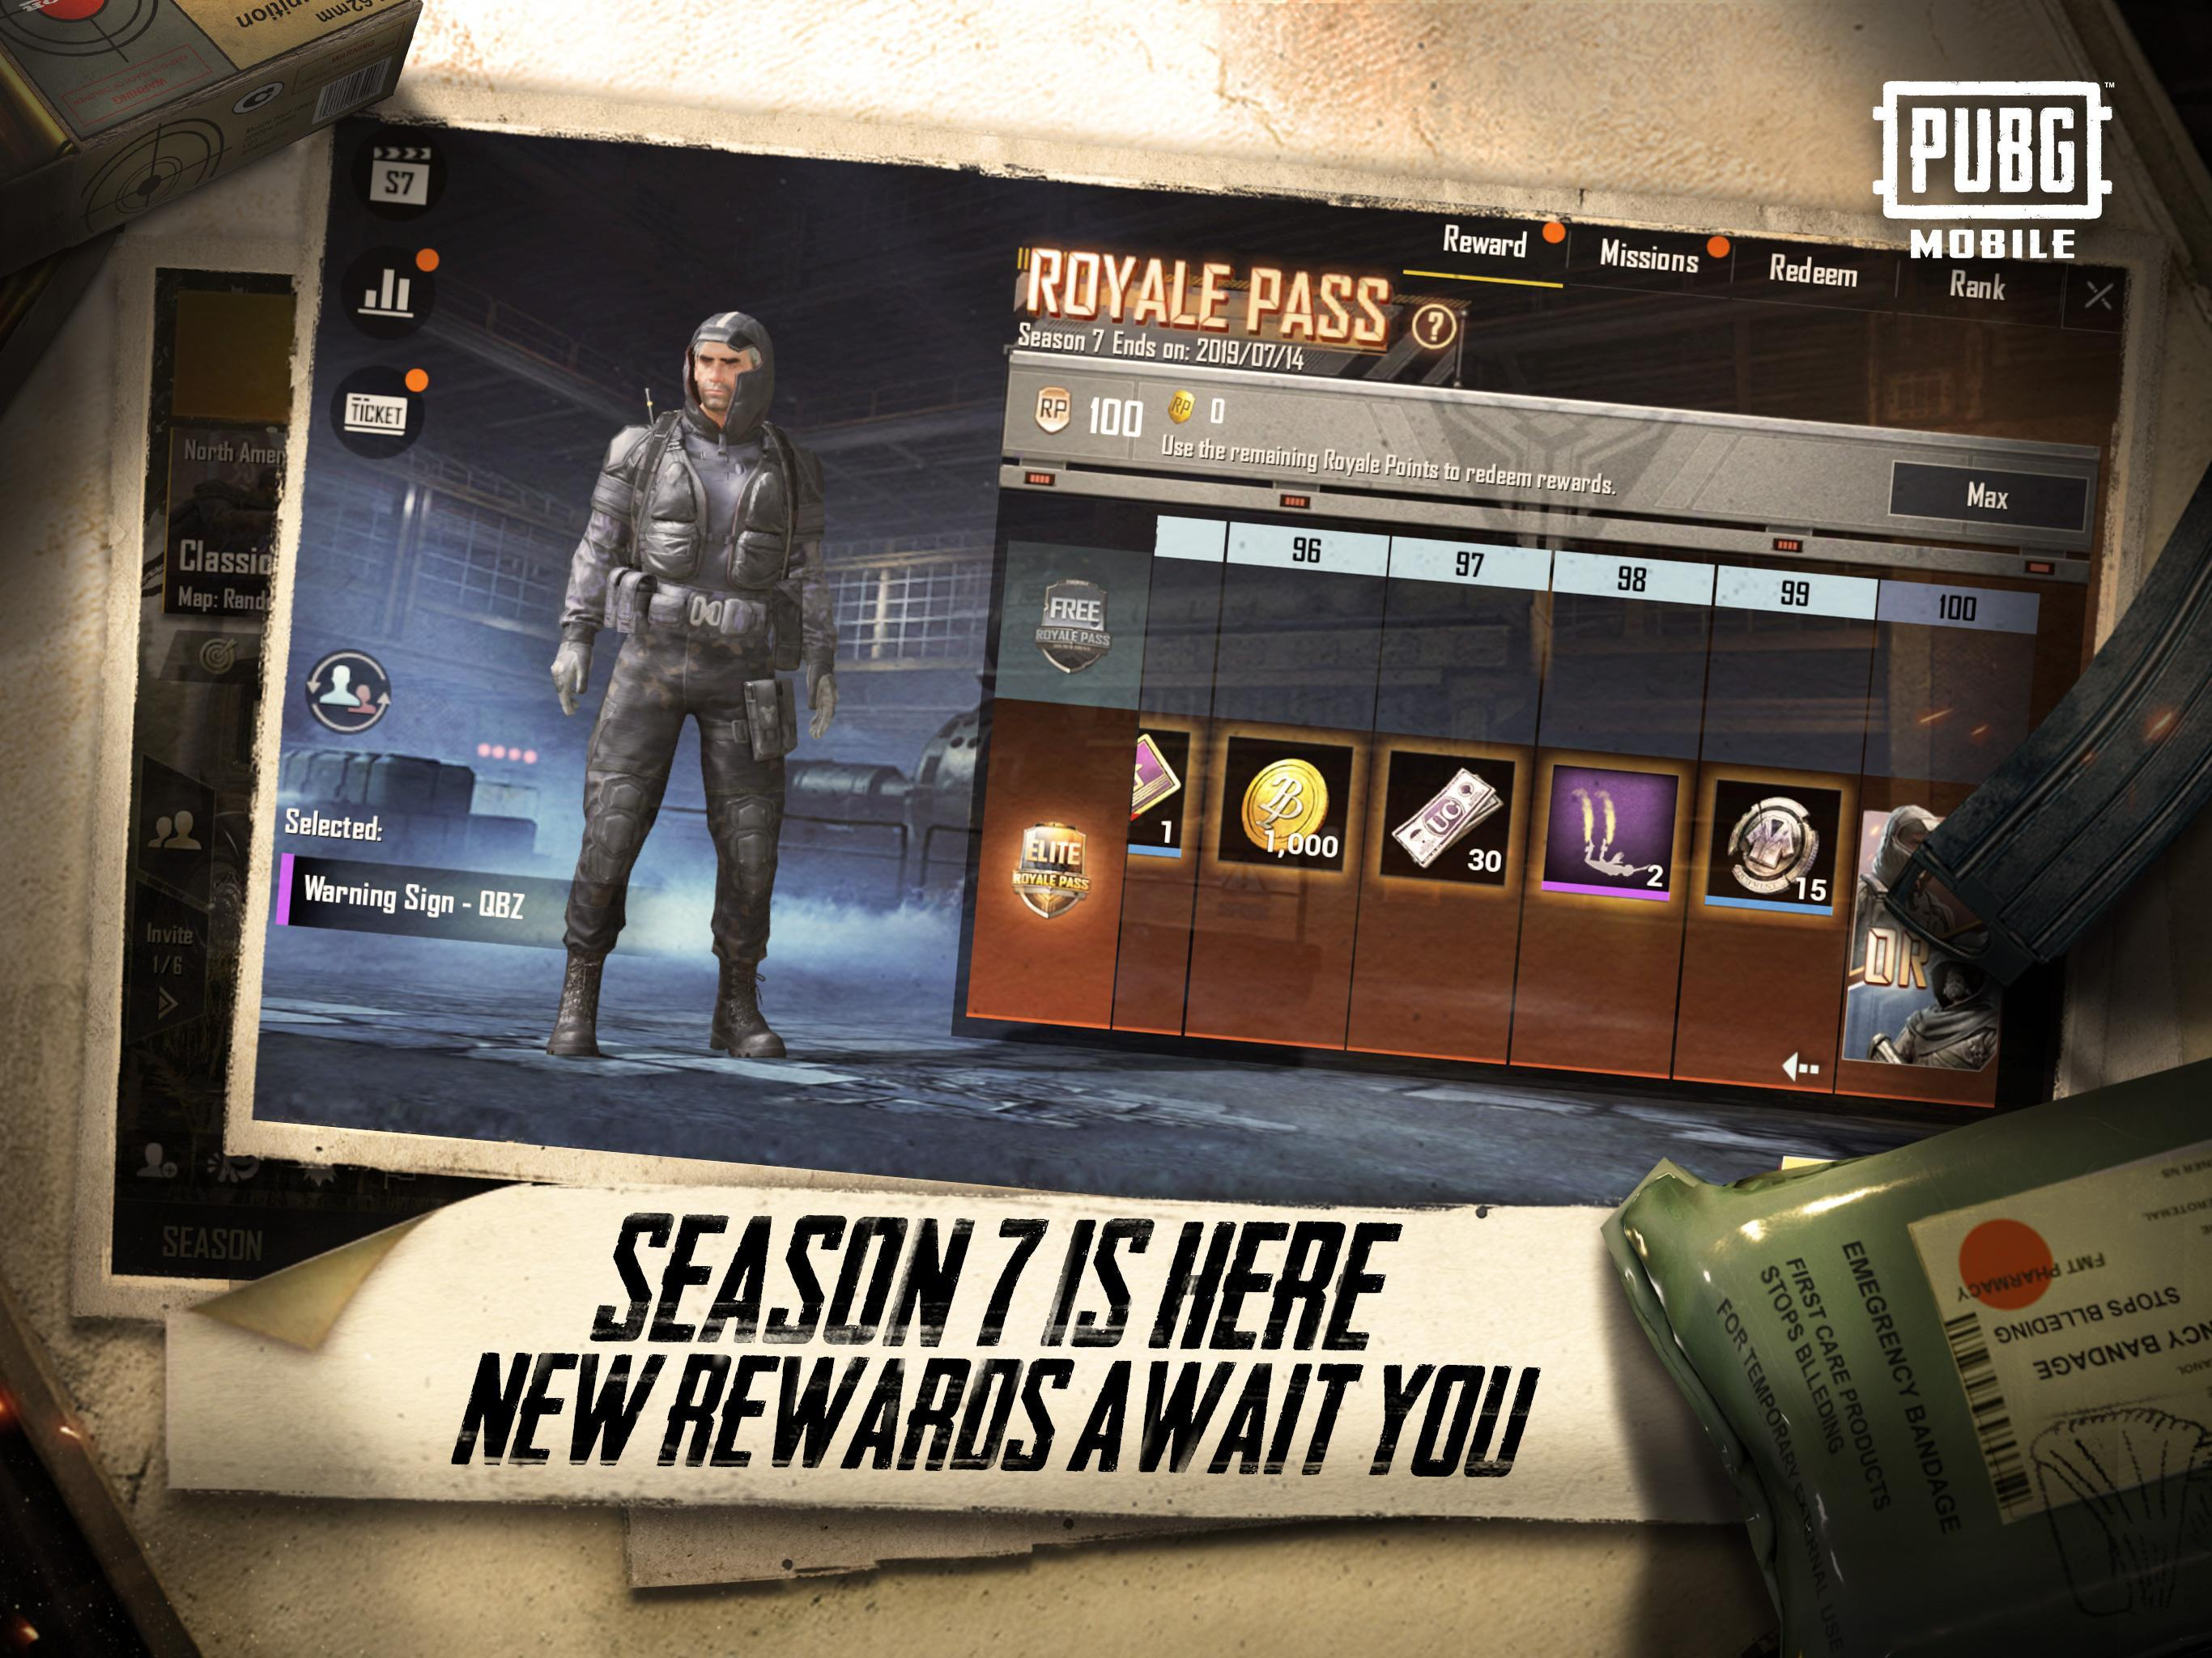 download pubg mobile highly compressed file